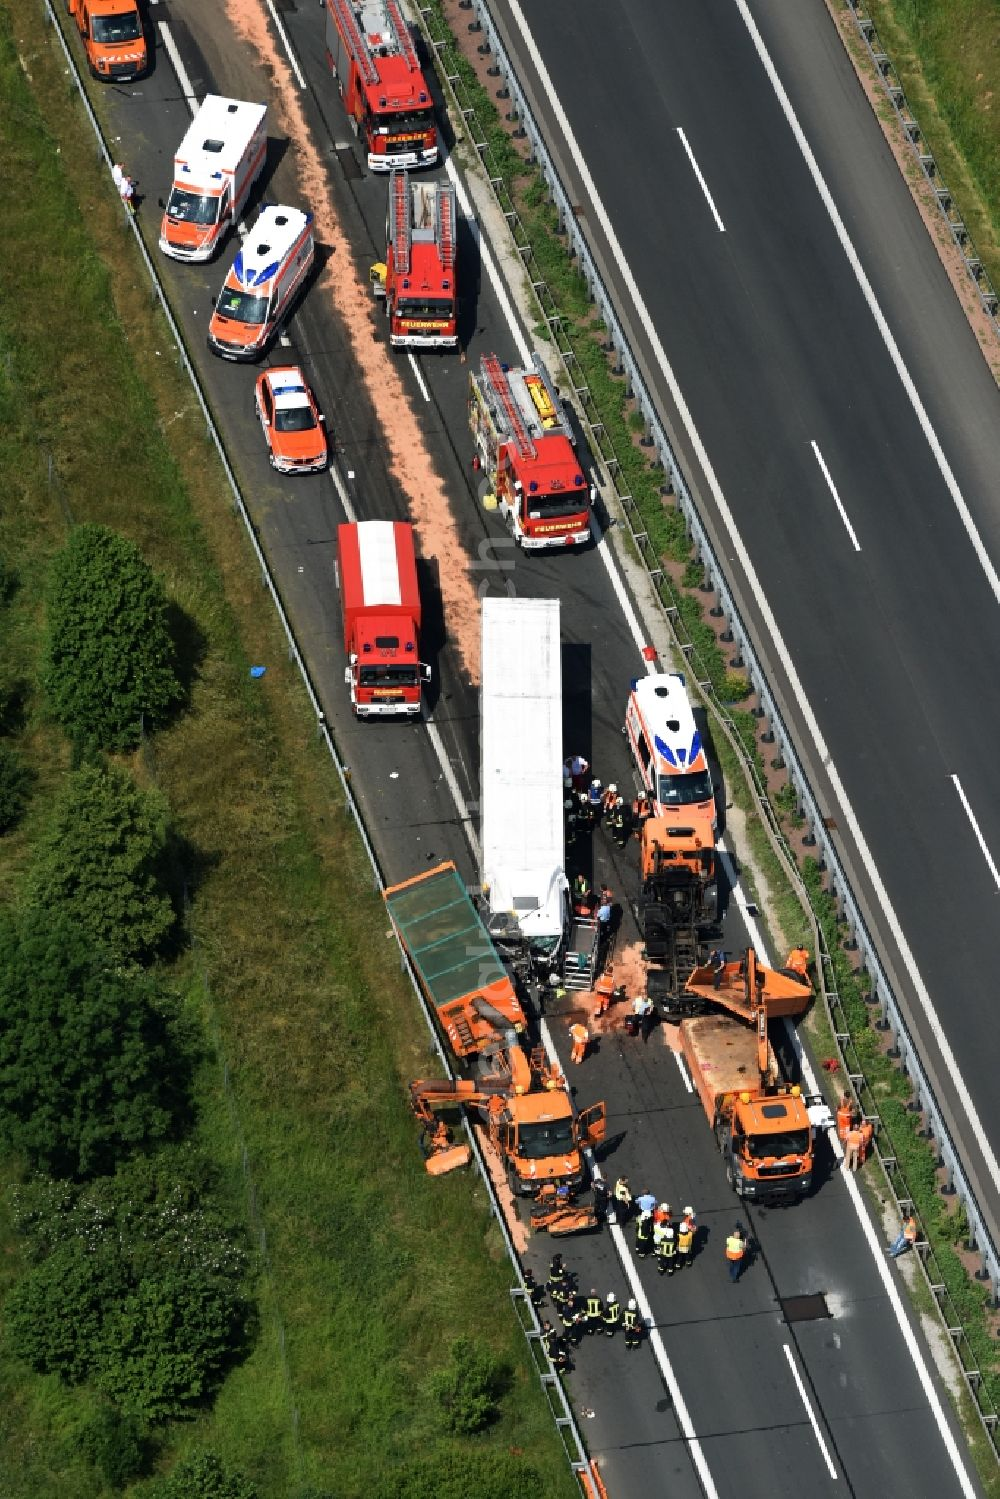 Plötzkau from above - Traffic accident with highway traffic